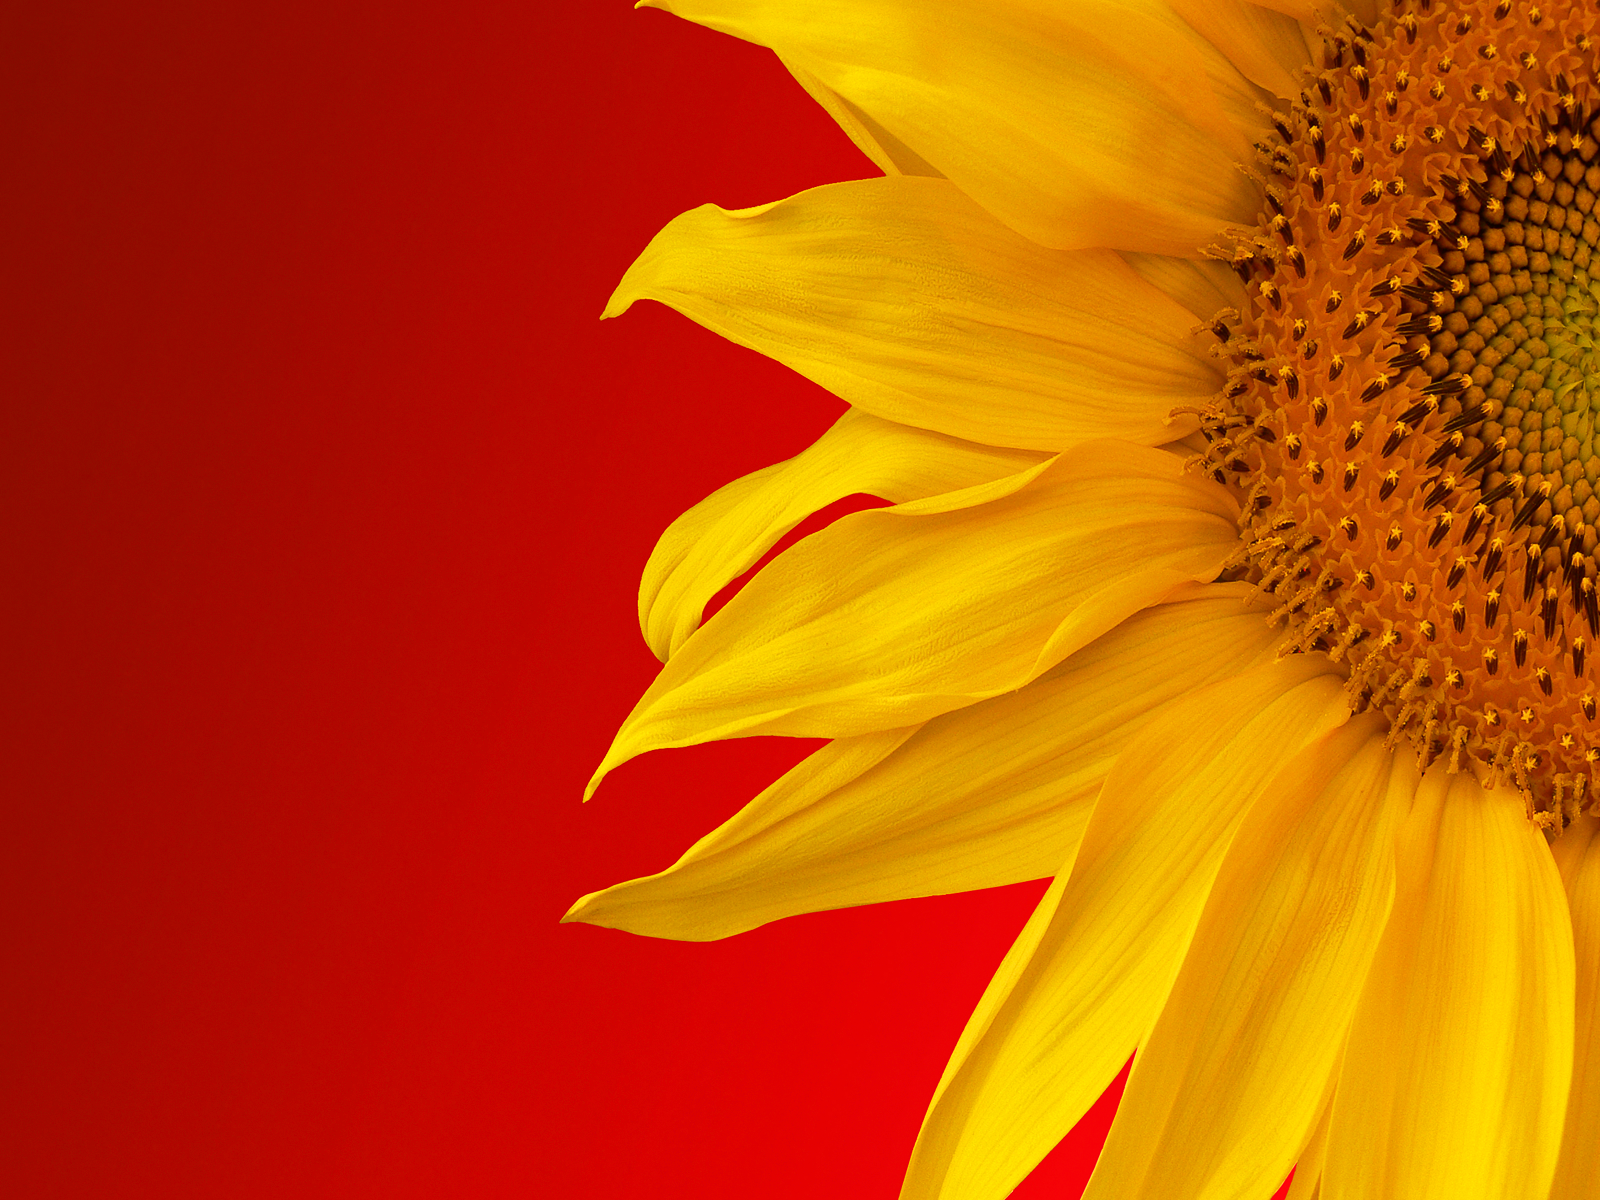 Abstract Sunflower Wallpapers Top Free Abstract Sunflower Backgrounds Wallpaperaccess